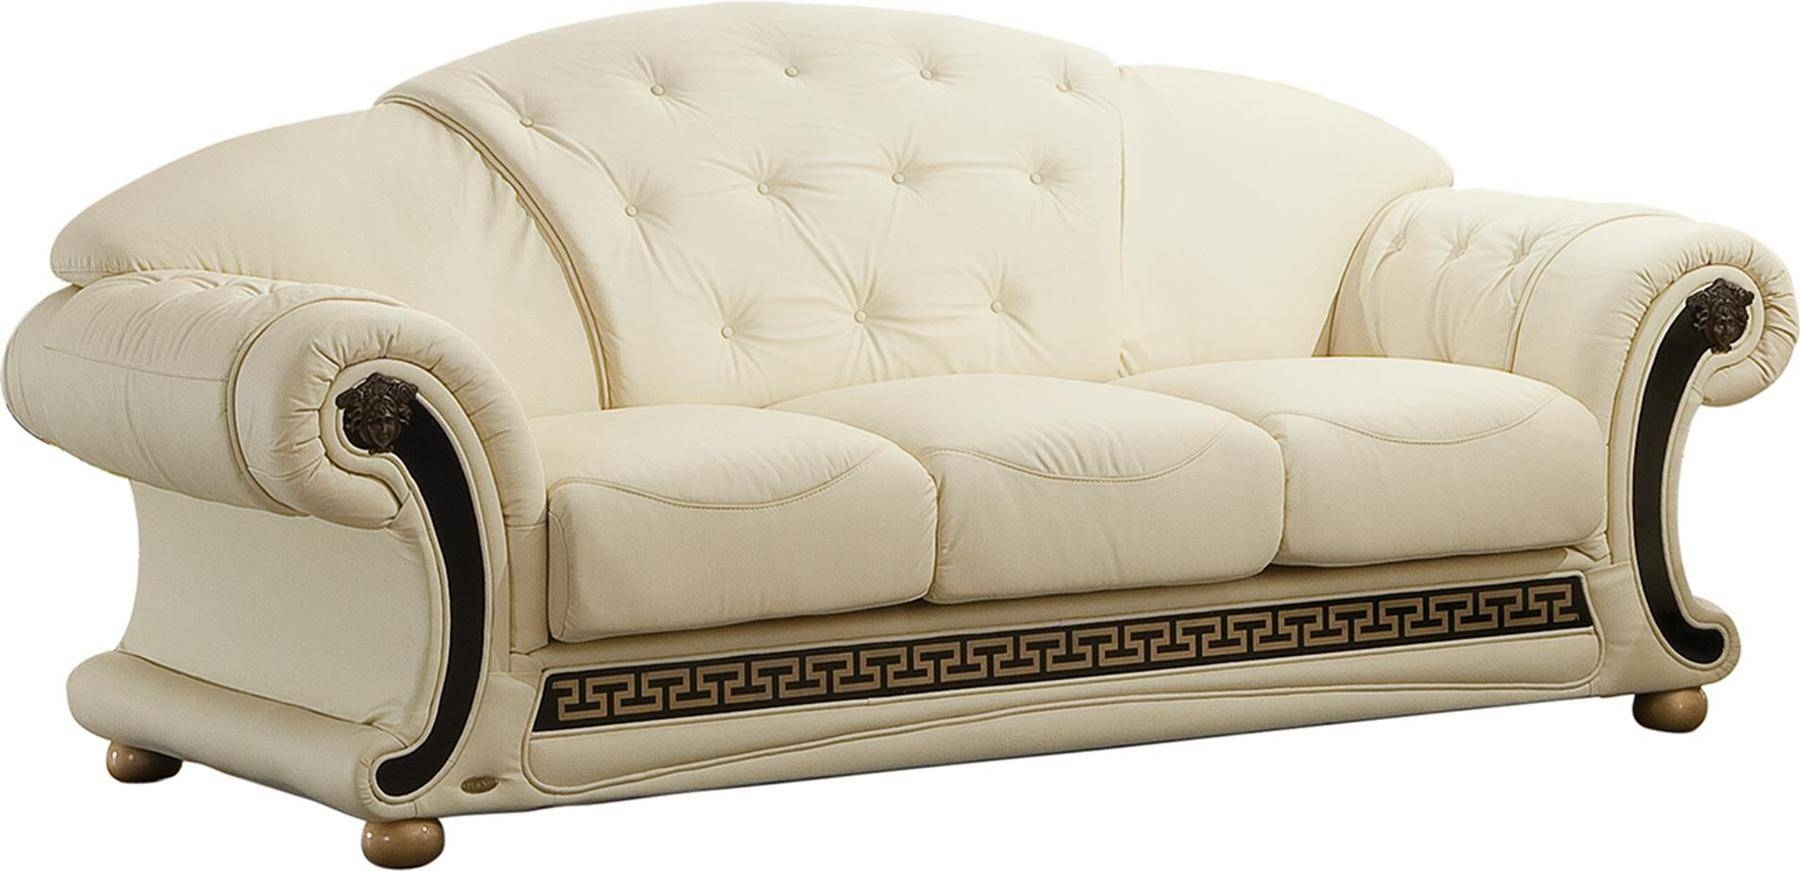 Versace Ivory Sofa Versace Esf Furniture Leather Sofas At Comfyco Within Ivory Leather Sofas (View 30 of 30)